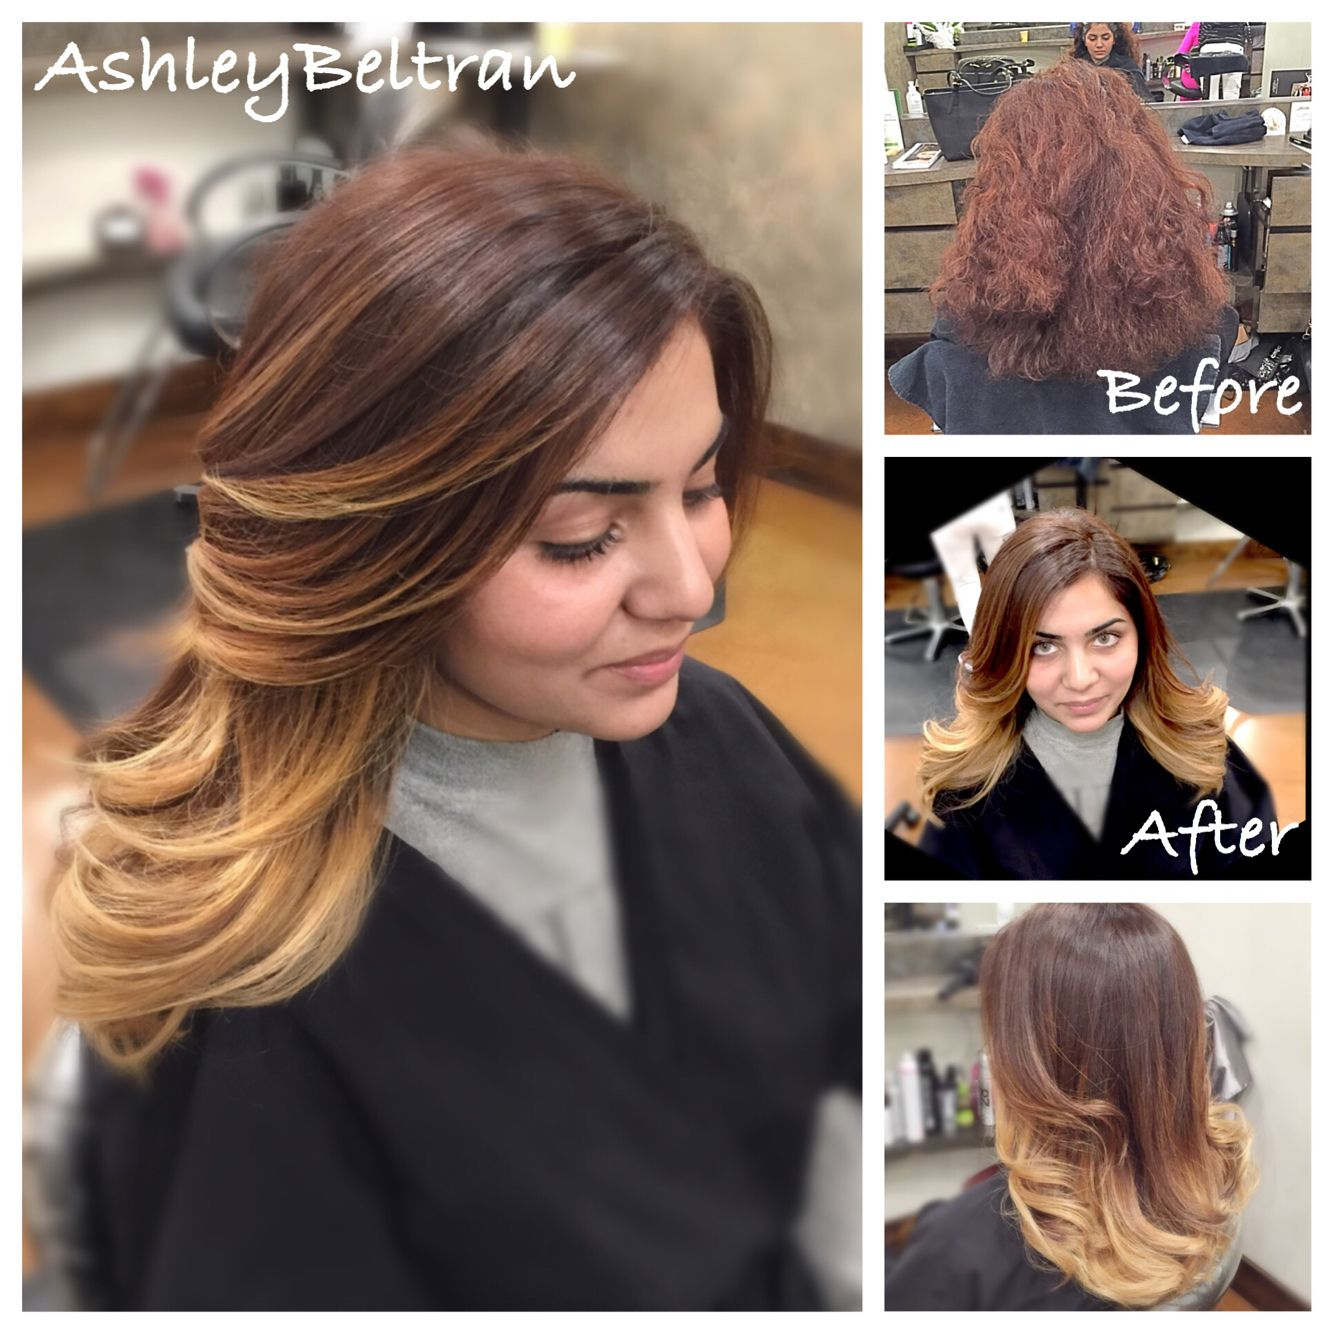 Beforeafter howard kurtz salon sherman oaks ca ombré